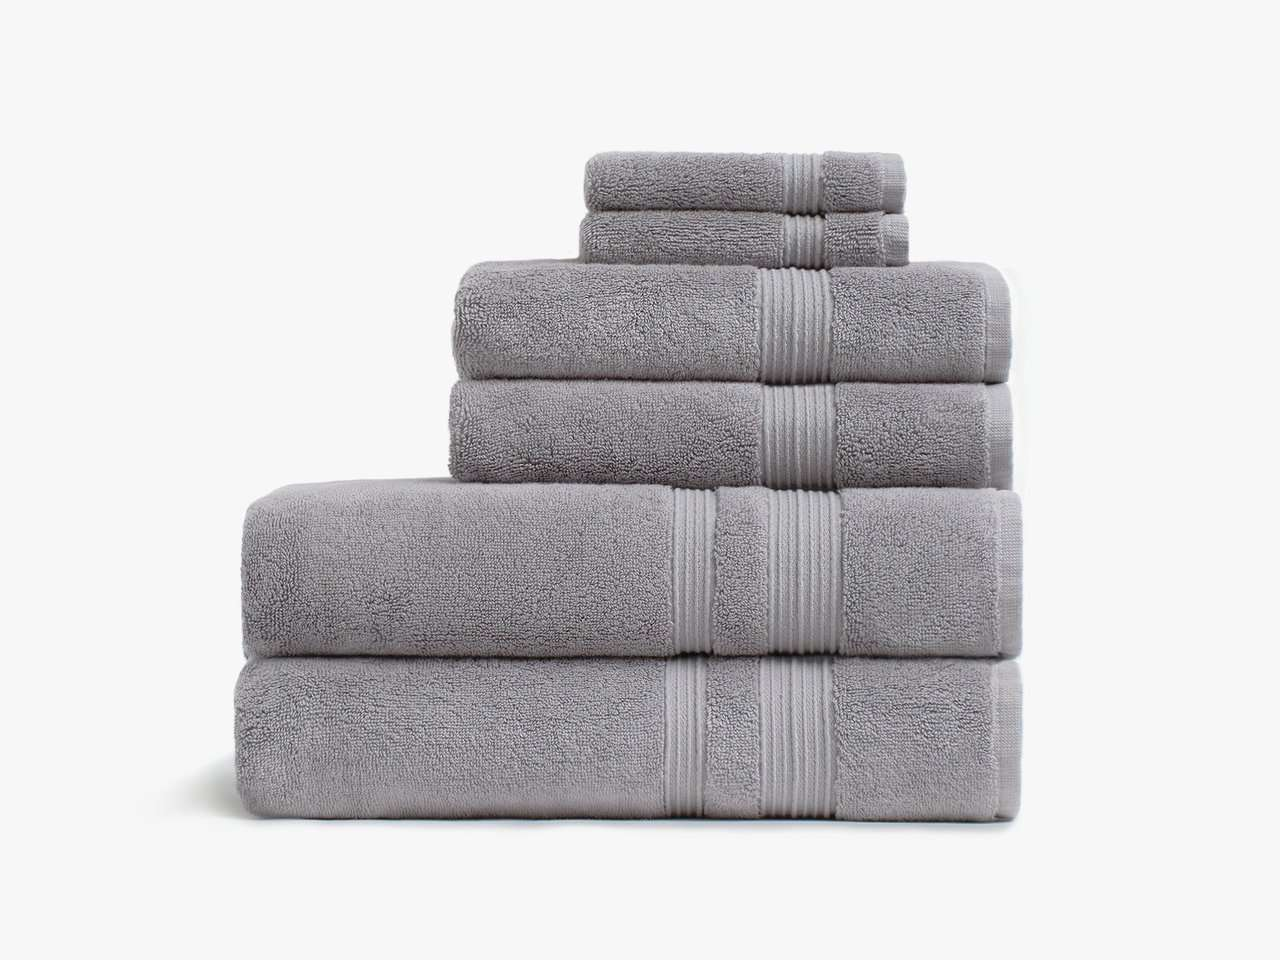 A pile of gray towels you can buy at Parachute